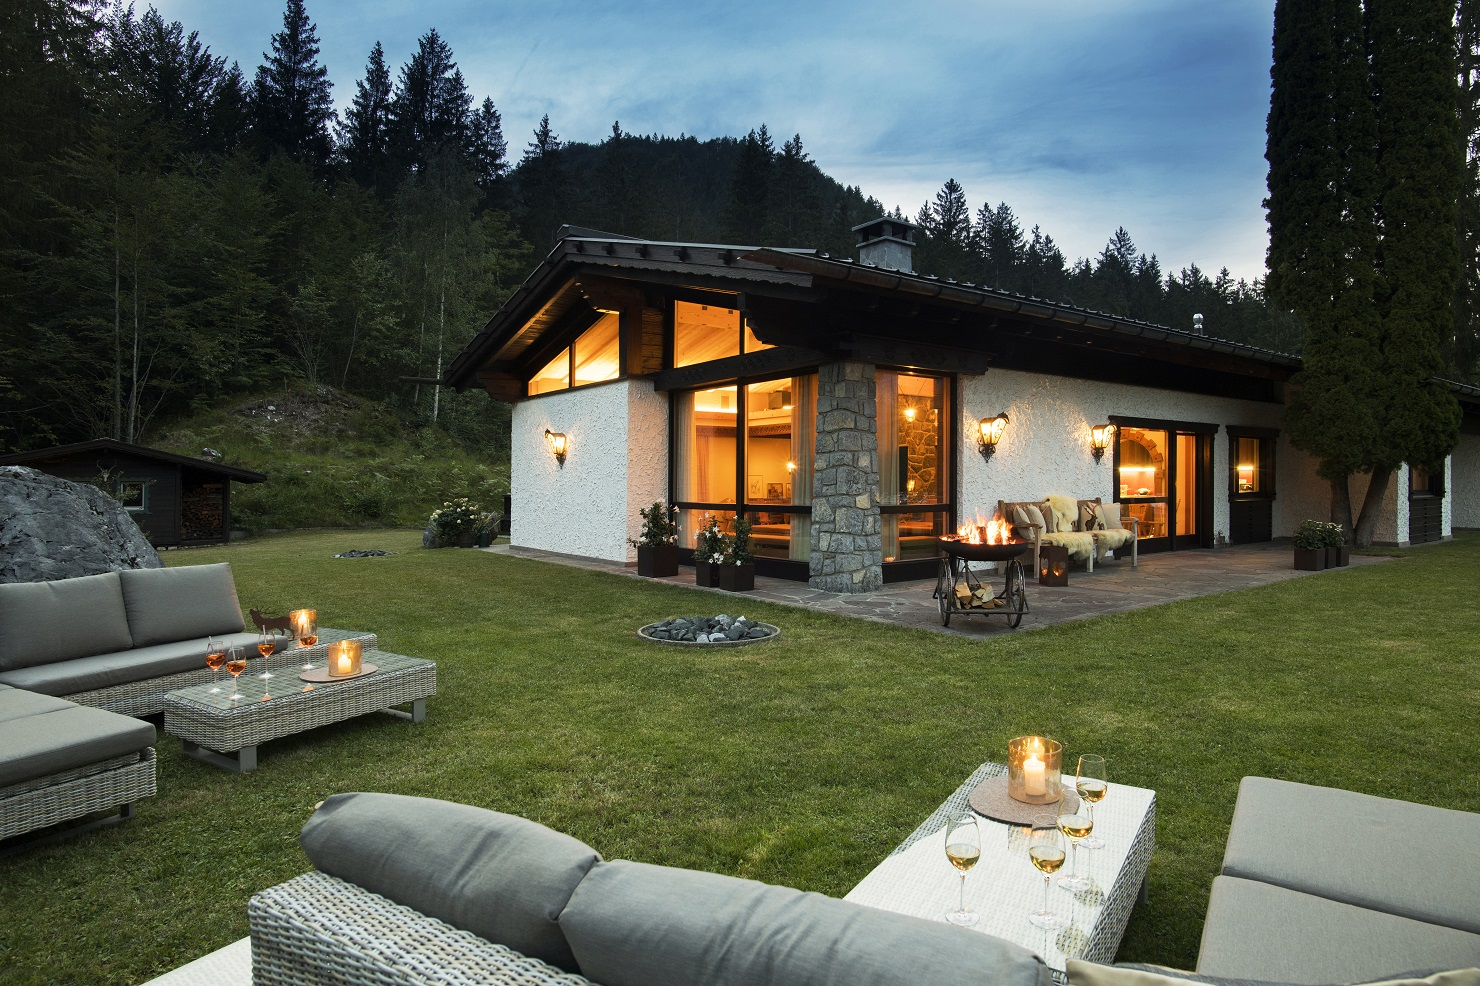 The Rappakopf Forrest house in the Montafon